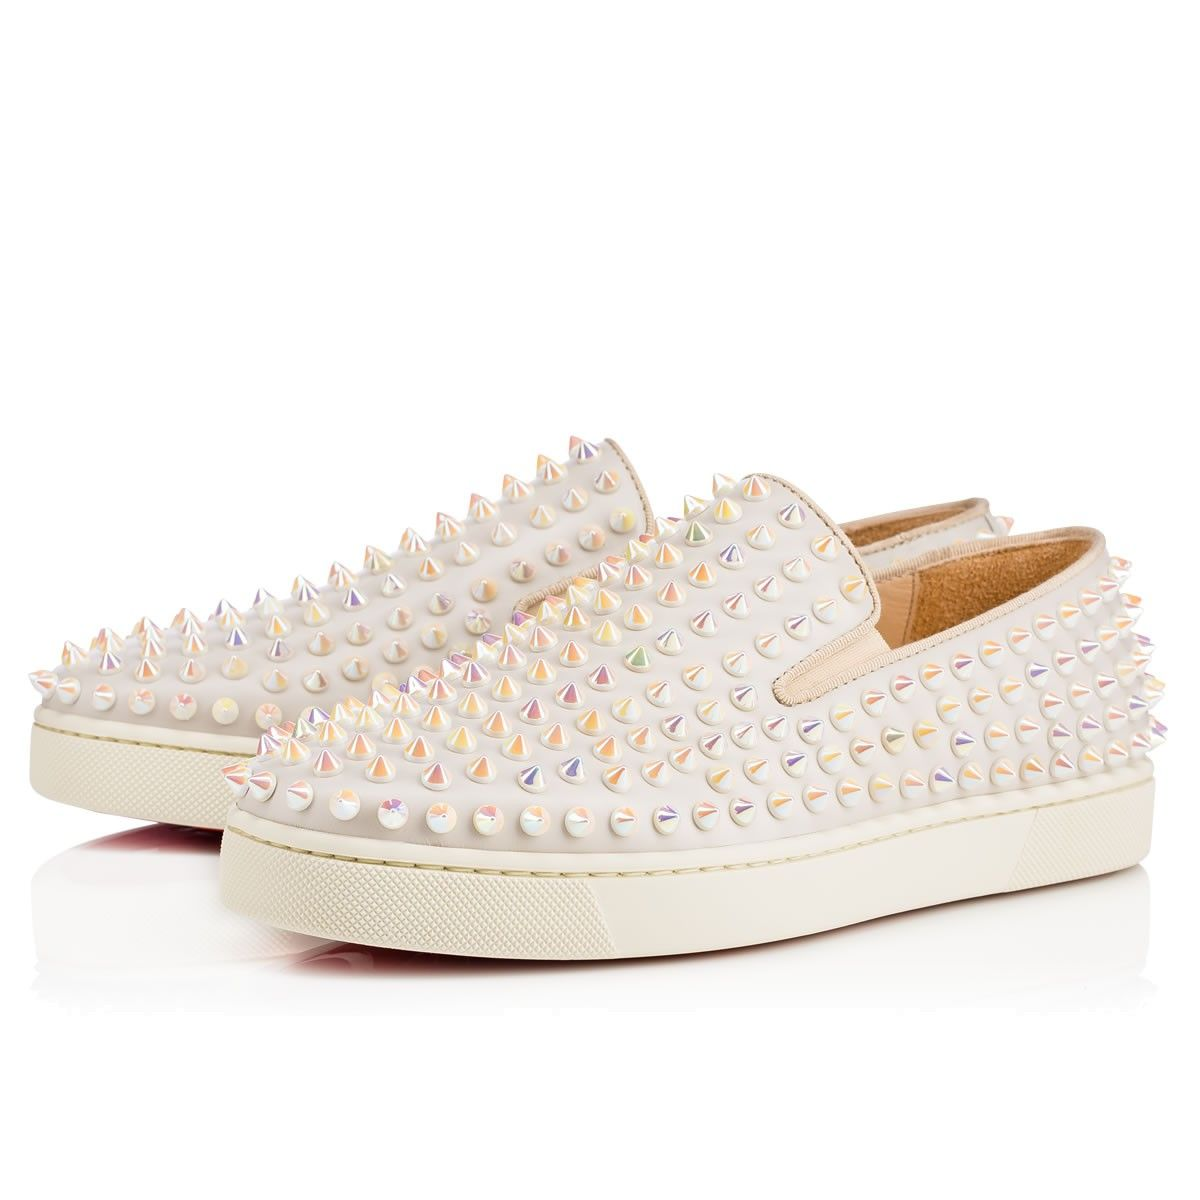 lowest price 45dc7 24f9c CHRISTIAN LOUBOUTIN Roller Boat Woman Calf, White, Calfskin ...